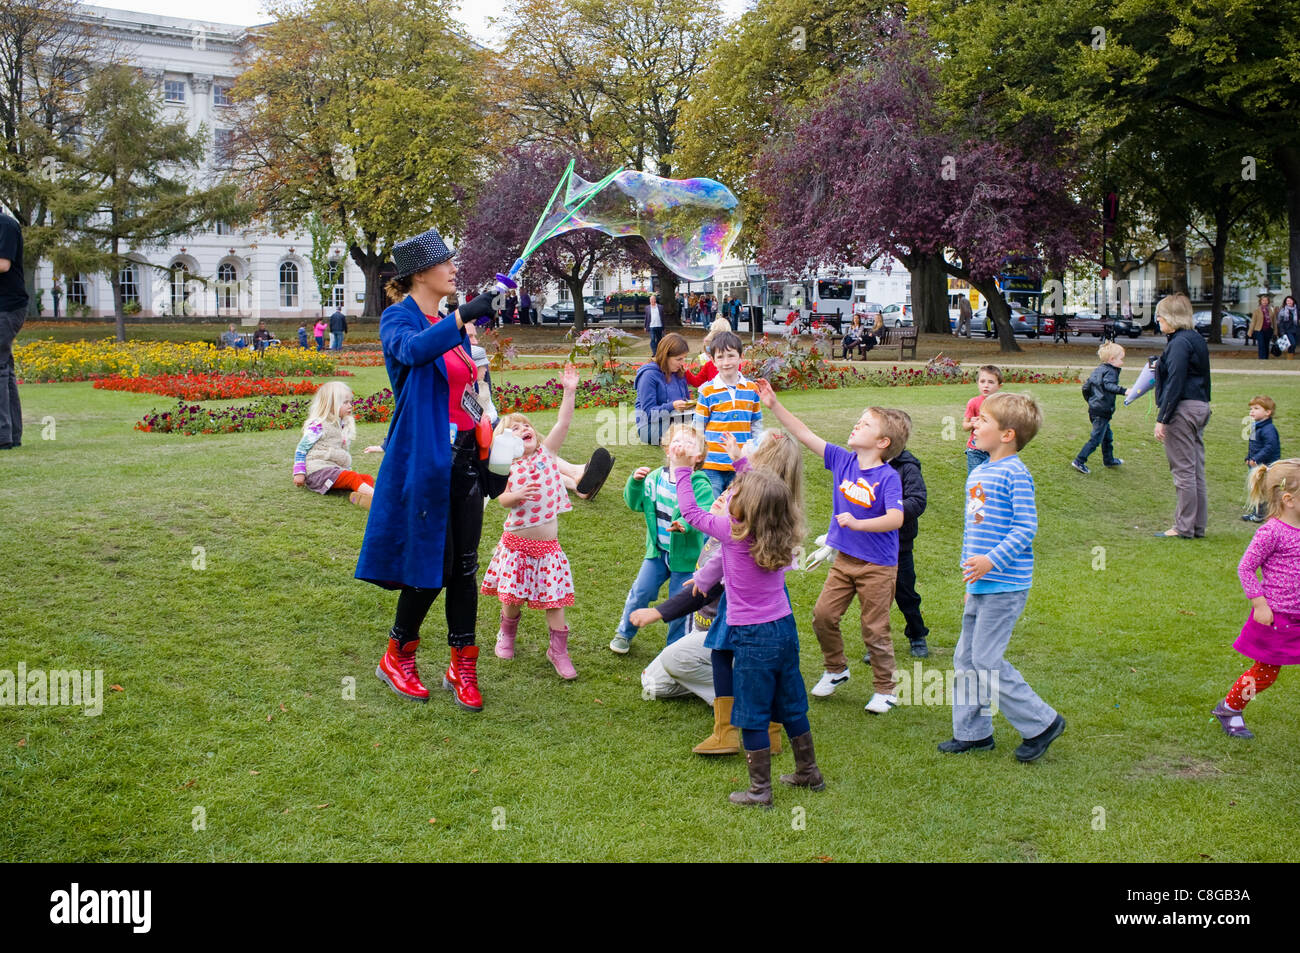 The Bubbleologist - a kids entertainer using a bubble sword to create a giant bubble that captivates young children. - Stock Image